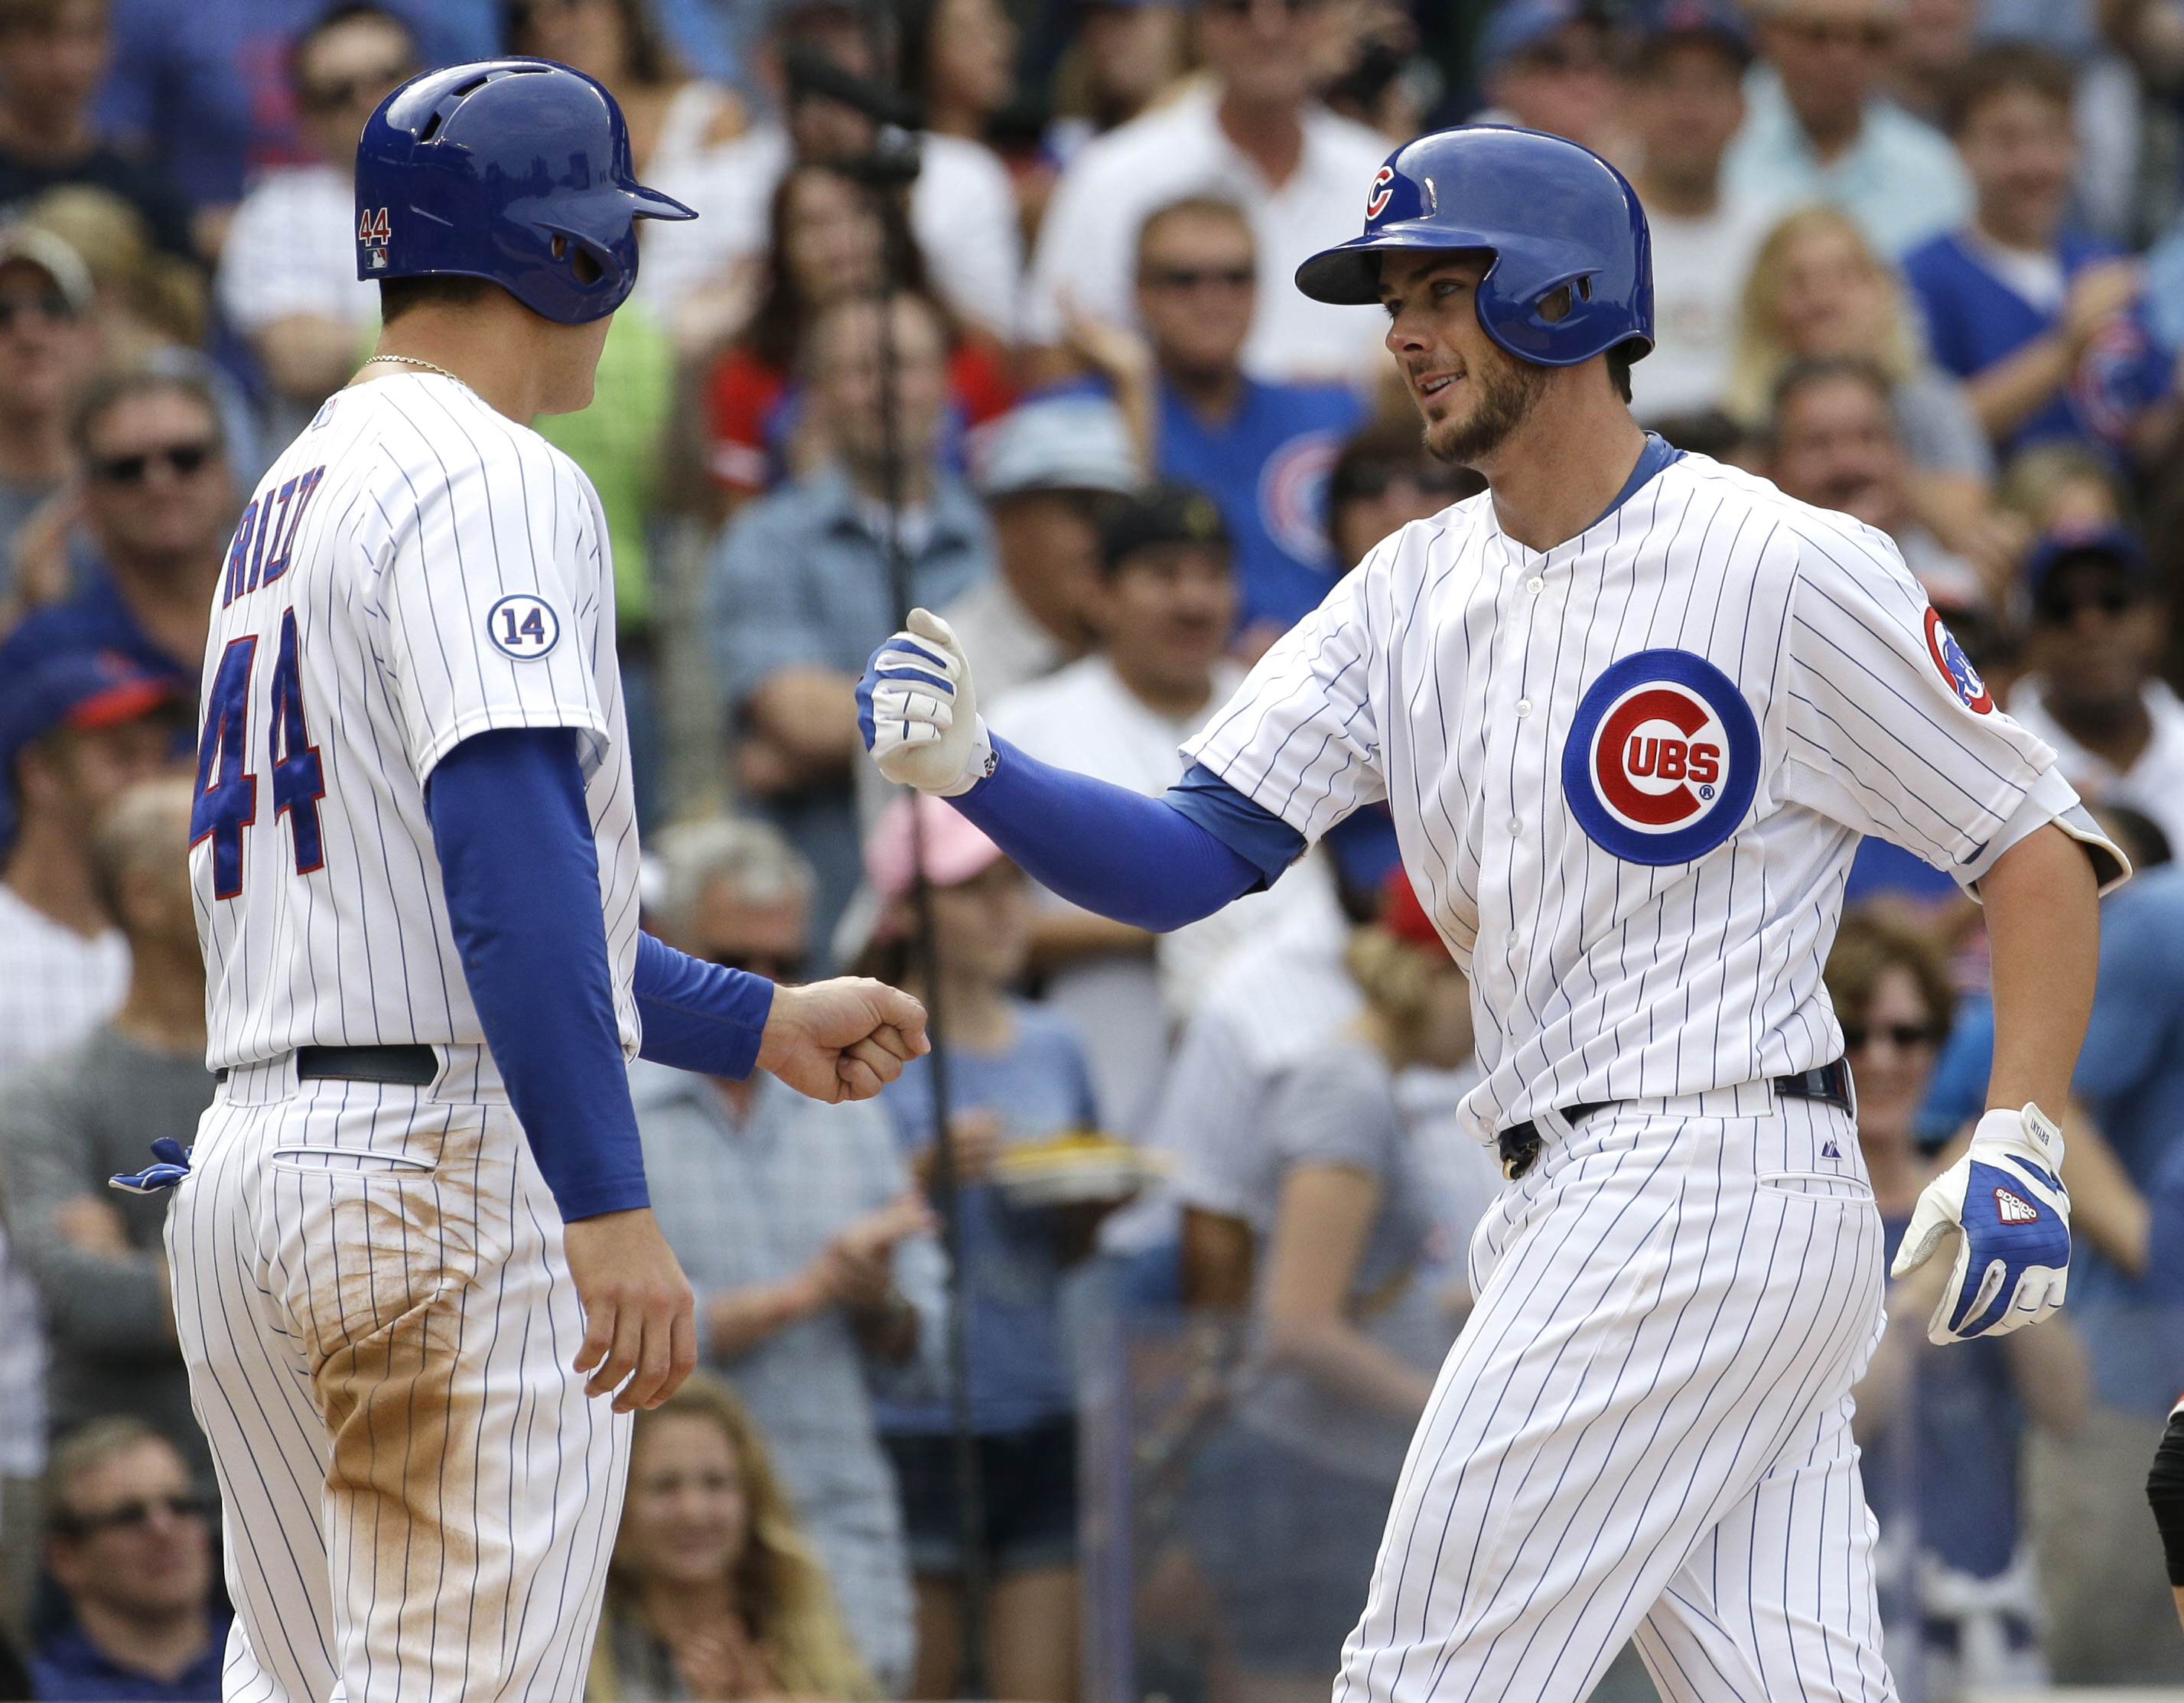 Chicago Cubs' Kris Bryant, right, celebrates with teammate Anthony Rizzo after hitting a two-run home run during the third inning of a baseball game against the San Francisco Giants, Saturday, Aug. 8, 2015, in Chicago. (AP Photo/Nam Y. Huh)